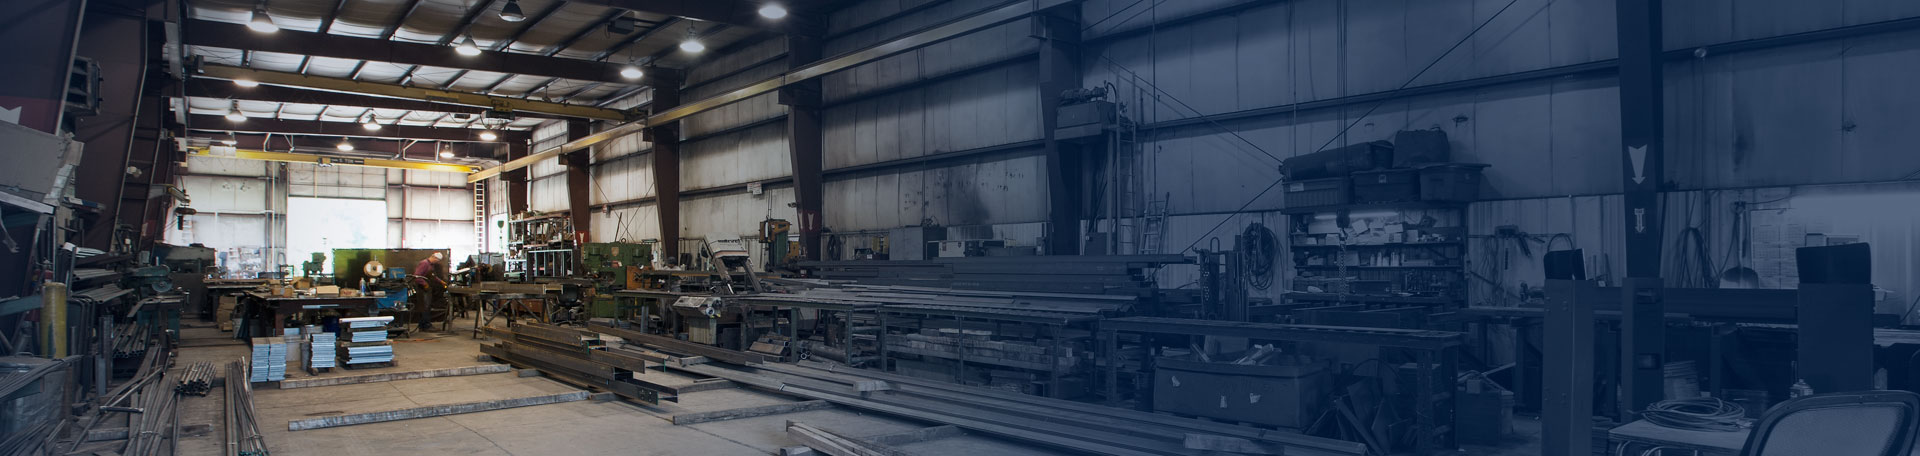 Mechanical and Industrial Steel Services, Inc.